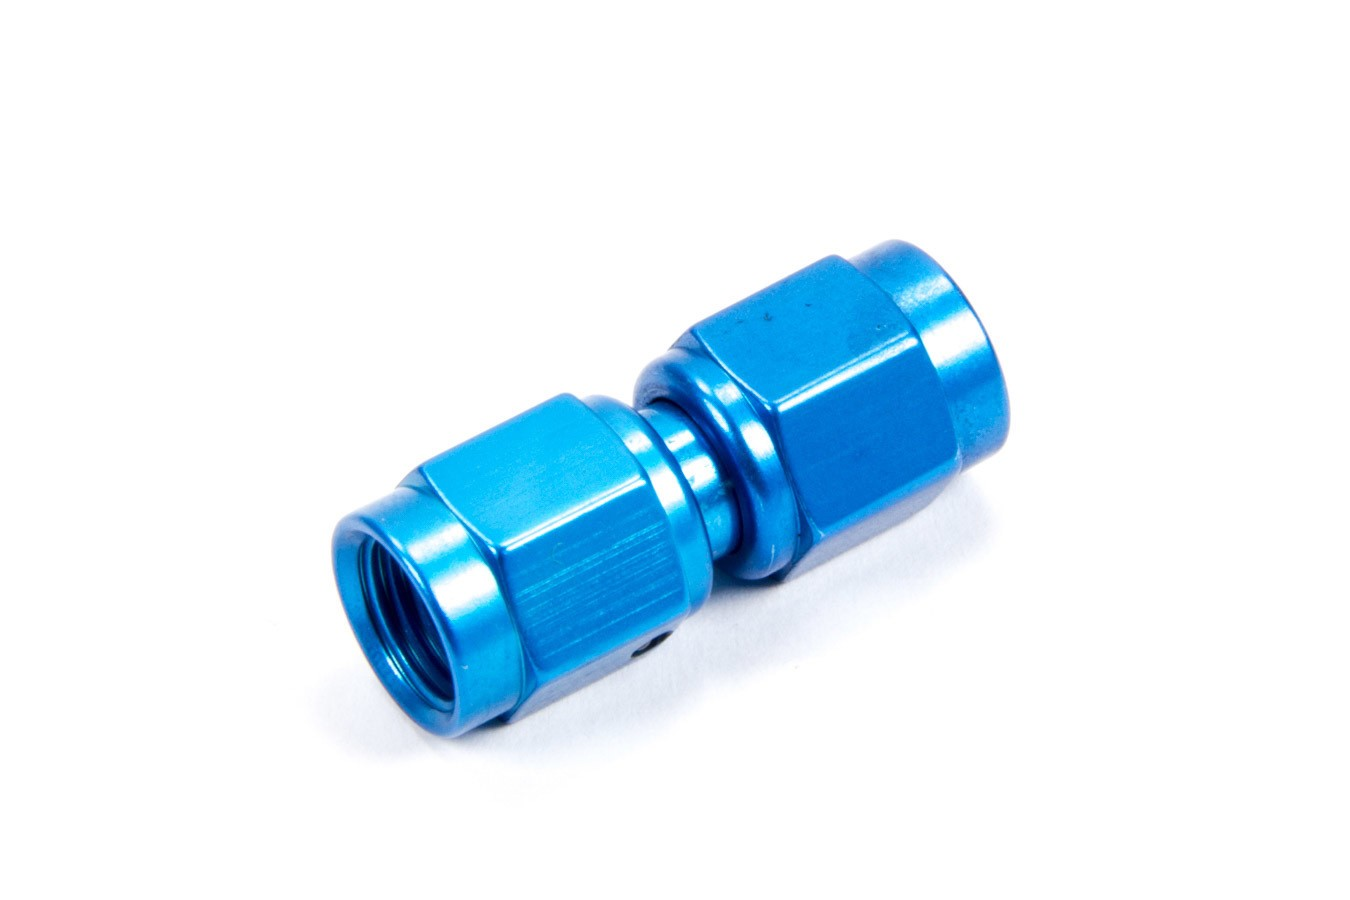 Fragola 496103 Fitting, Adapter, Straight, 3 AN Female Swivel to 3 AN Female Swivel, Aluminum, Blue Anodized, Each